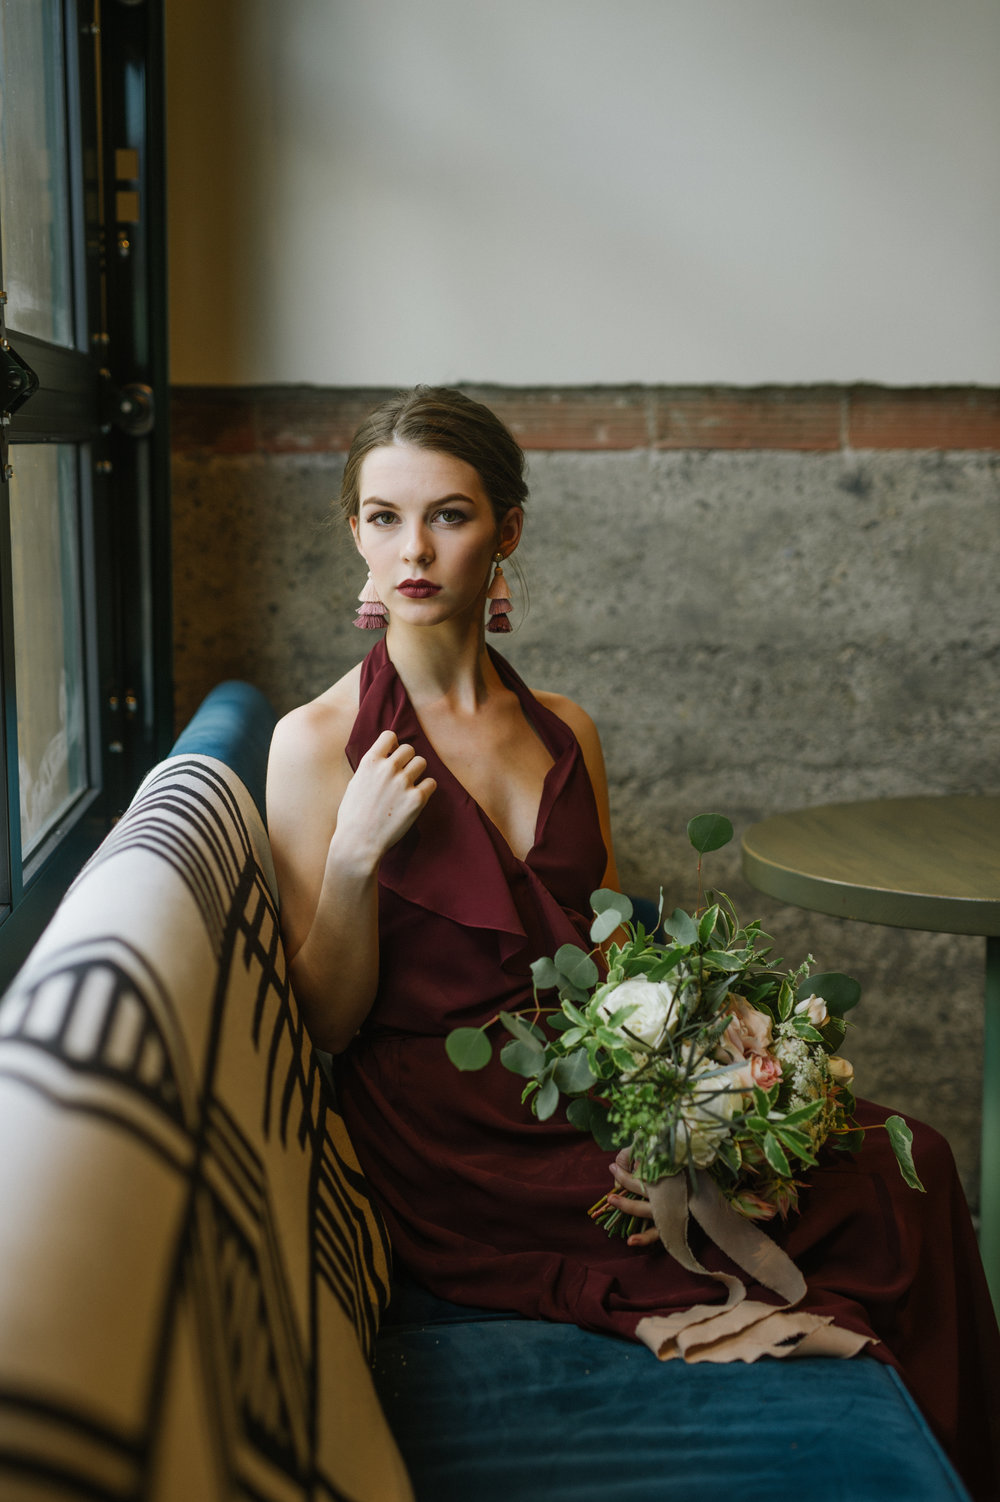 Calgary_Wedding_Photography_Bridgette_Bar_Bridesmaids_Shoot_2018_HR078.jpg